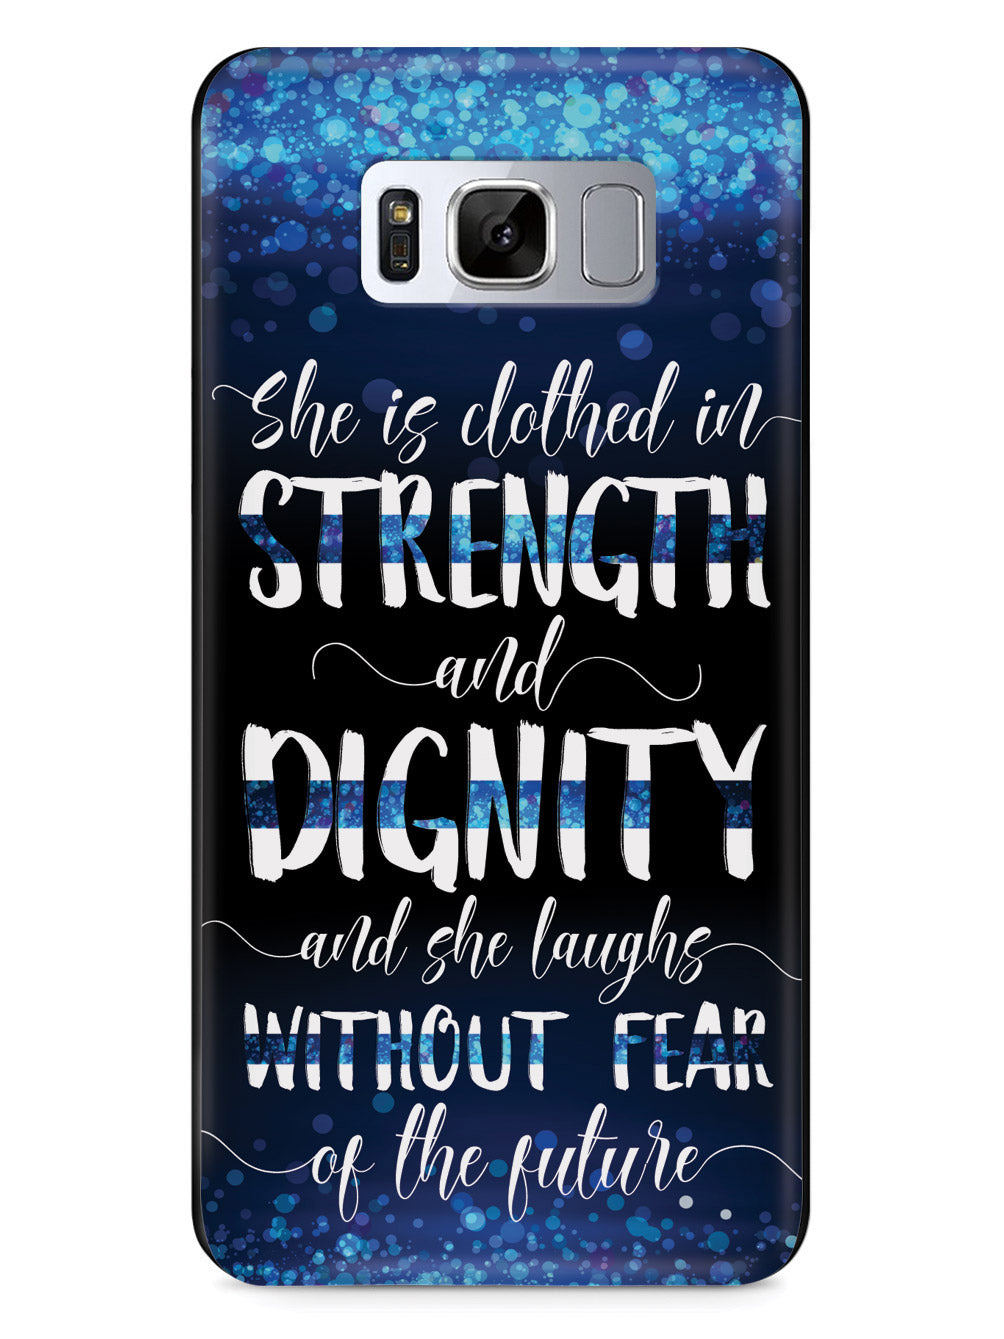 She Is Clothed in Strength and Dignity - Thin Blue Line Case